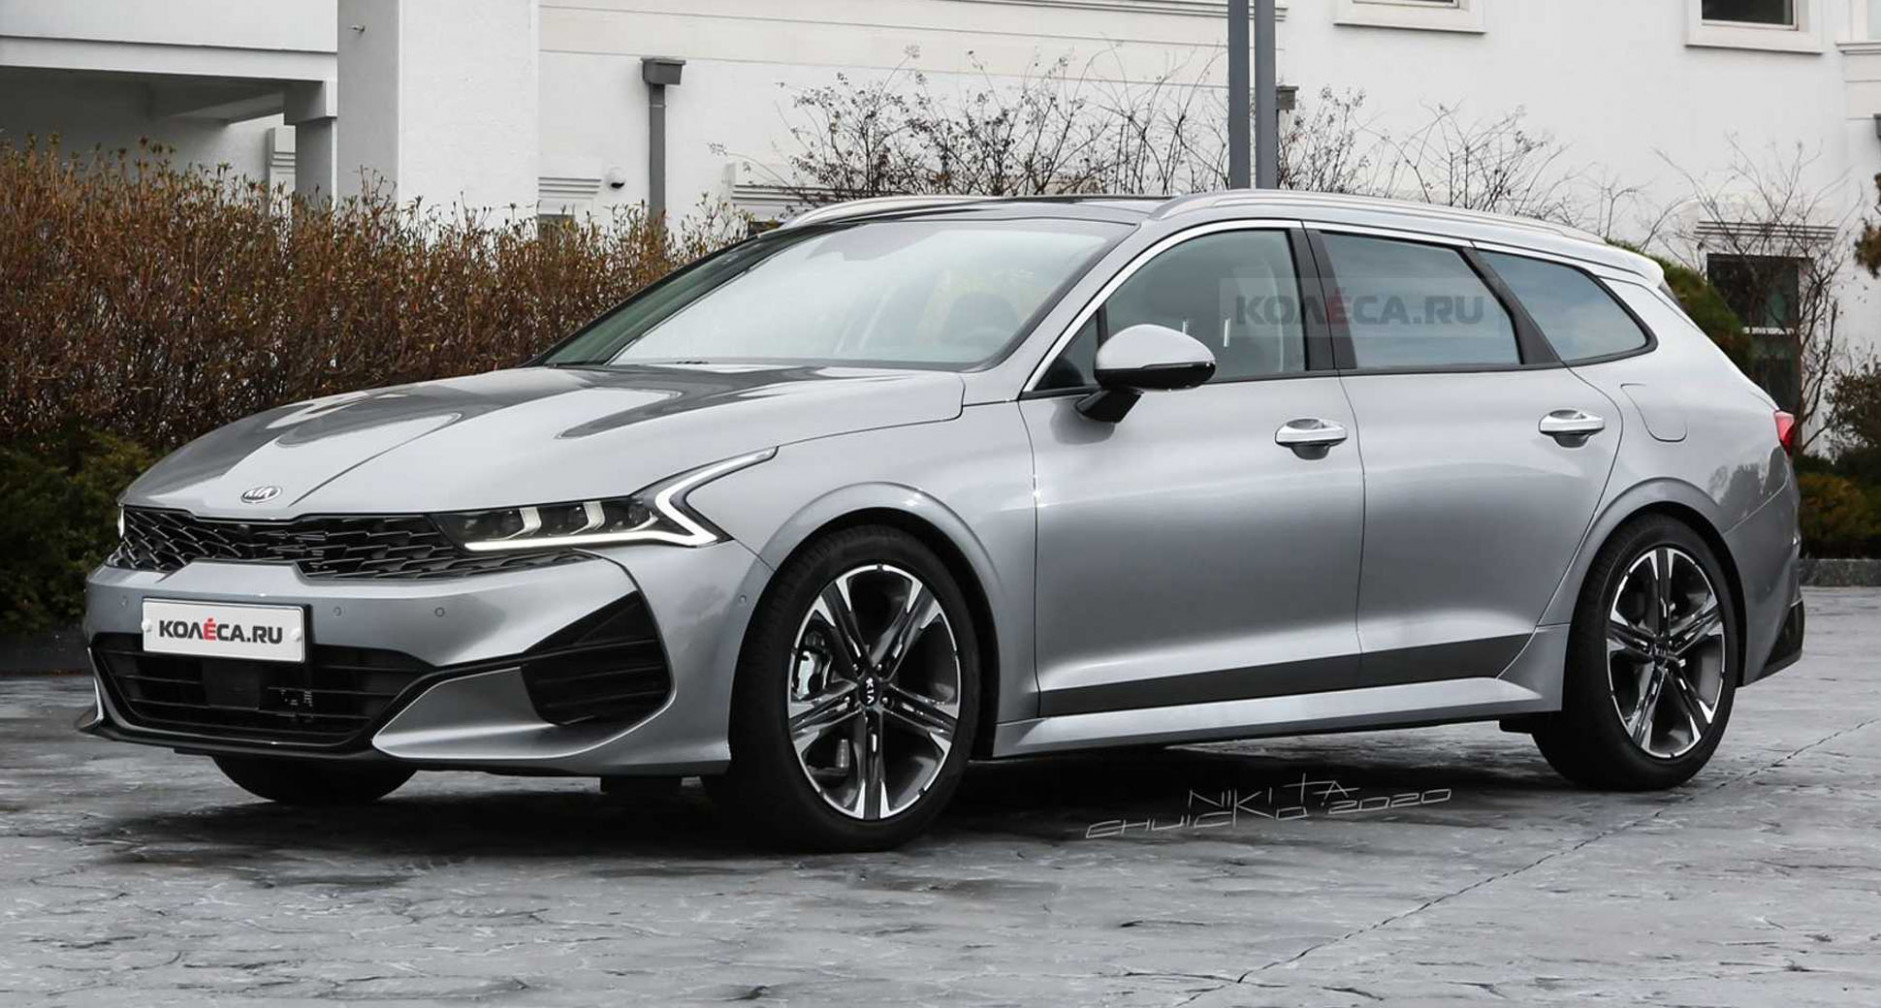 New 8 Kia Optima (K8) Looks Seductive As A Sports Wagon | Carscoops